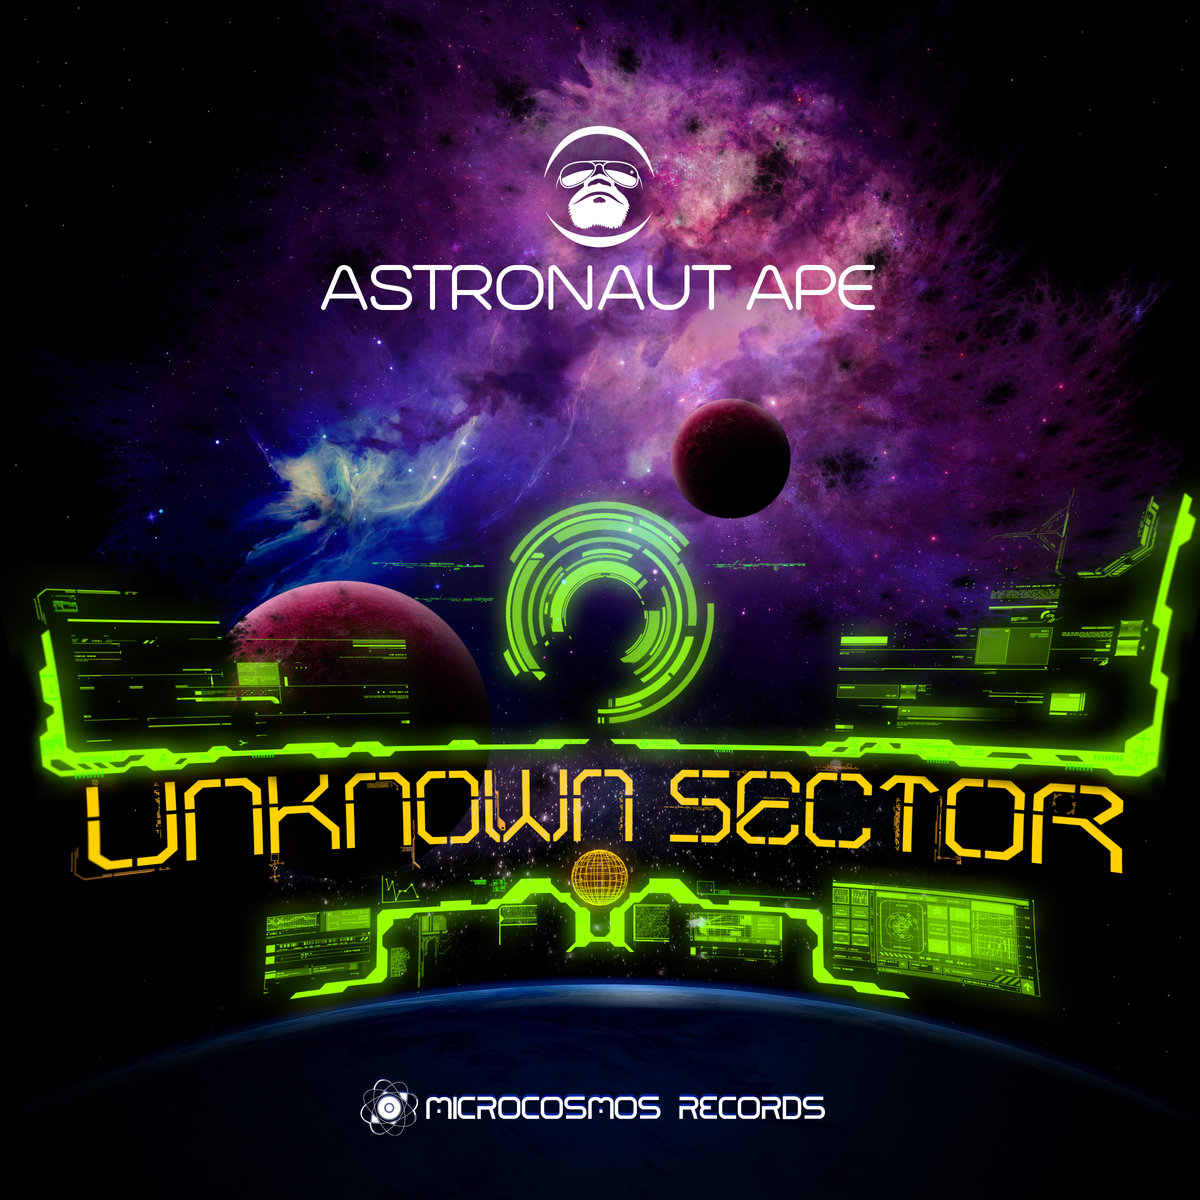 Astronaut Ape - Nebula @ 'Unknown Sector' album (ambient, chill-out)